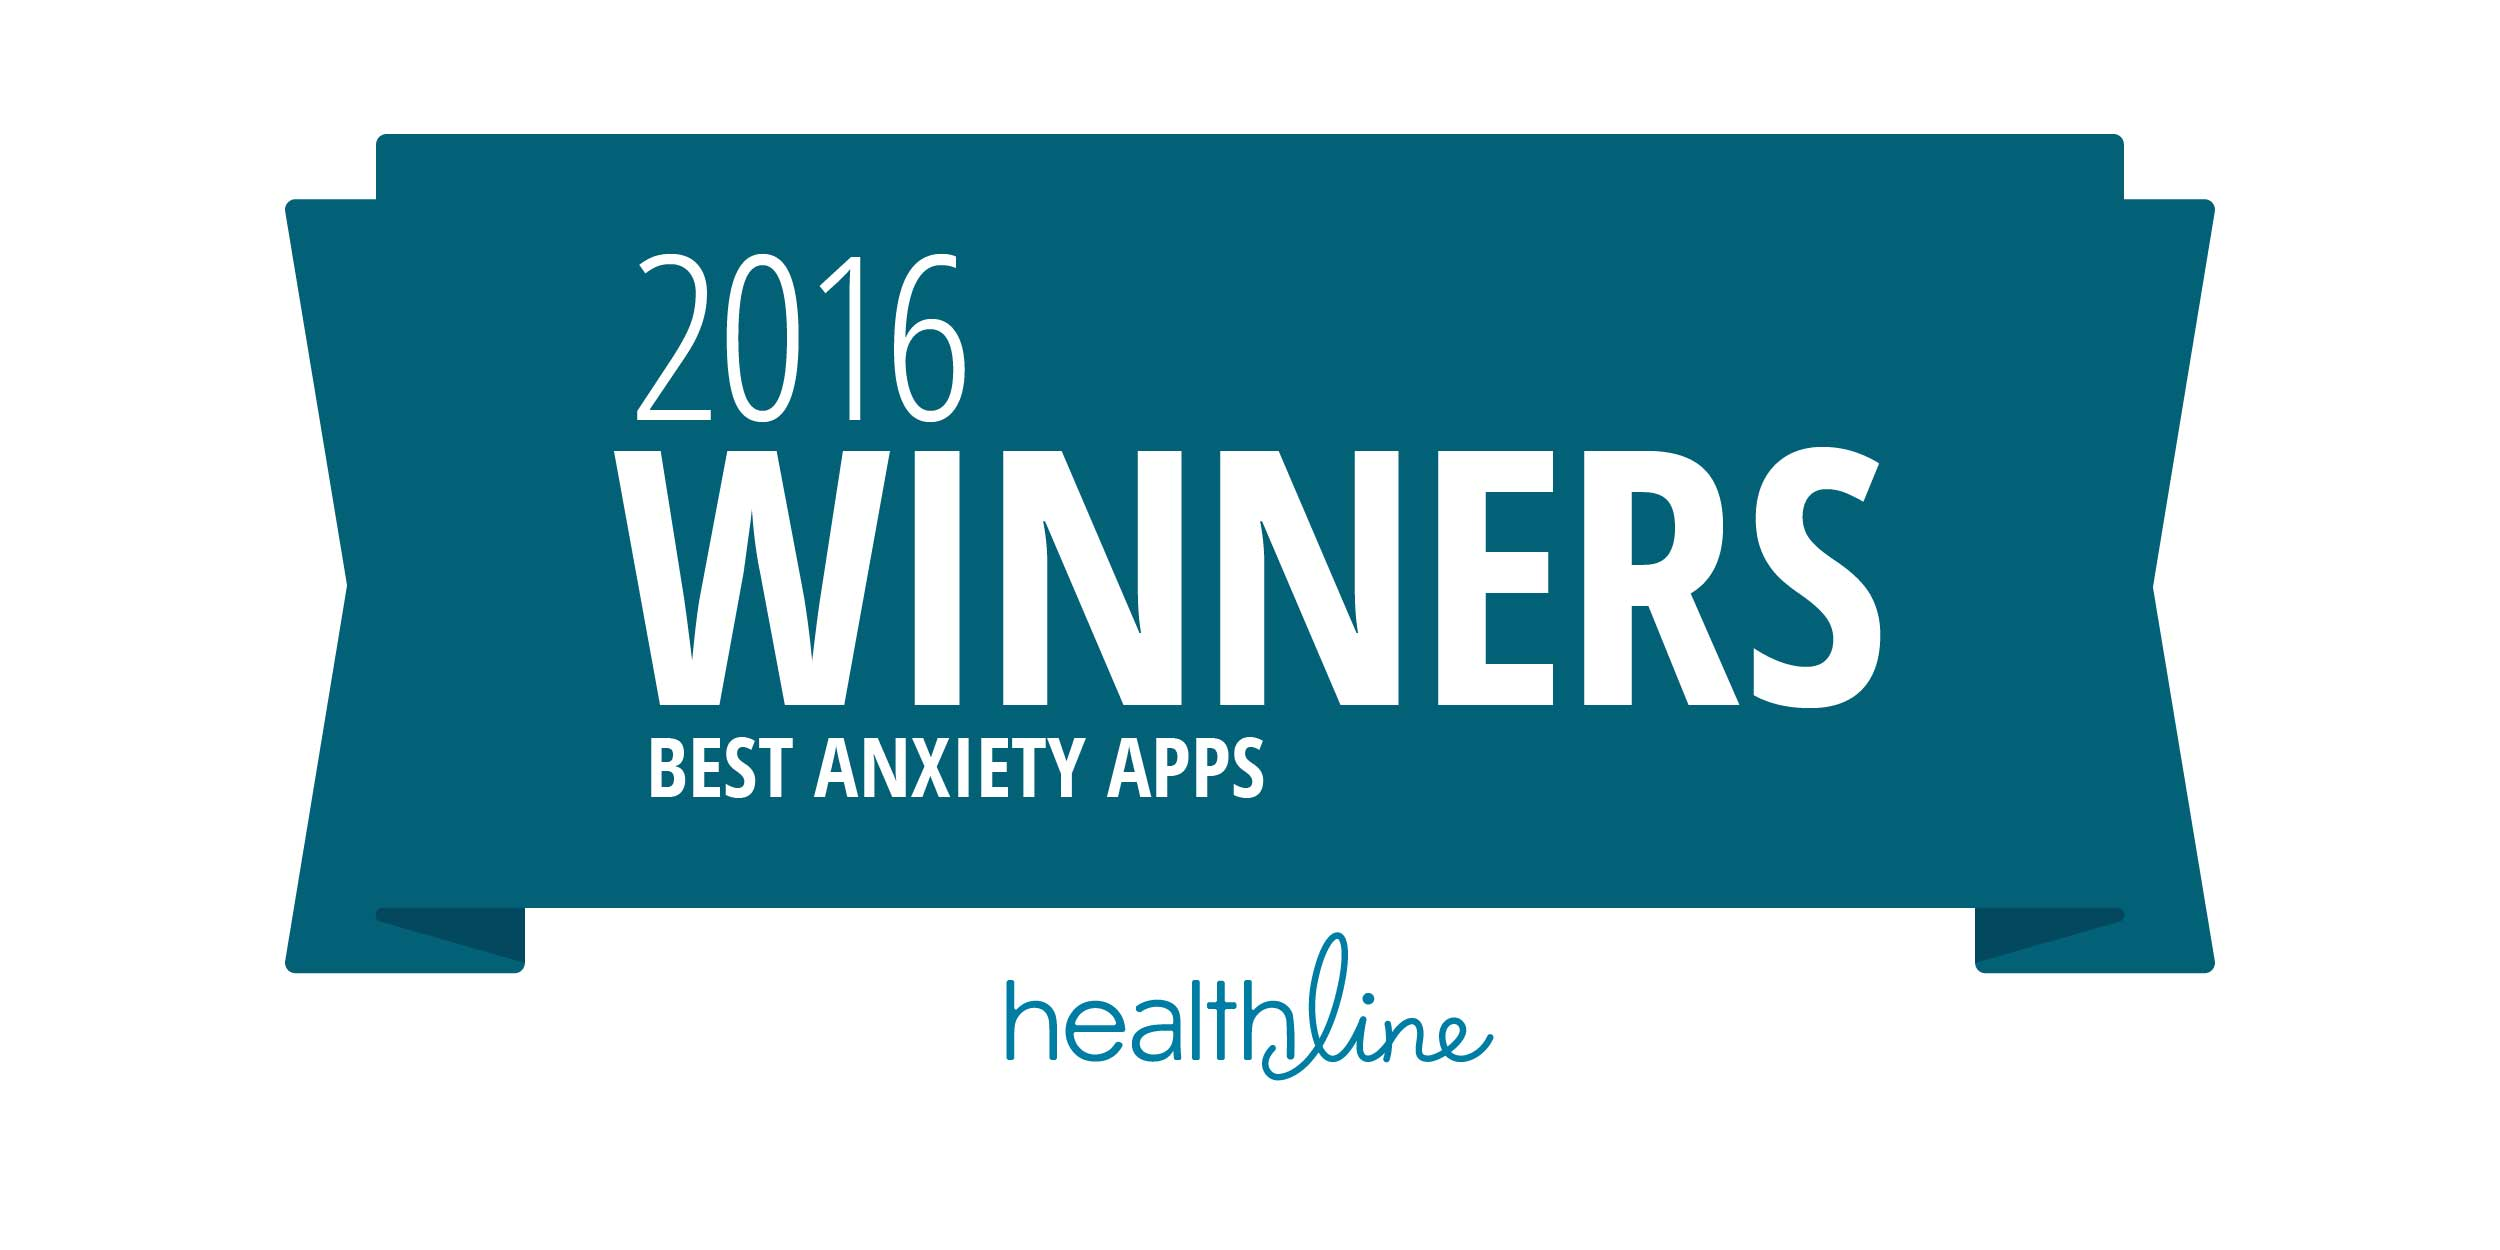 Best Anxiety Apps of 2016 - I Can Be Anything 2016-08-16 13:36